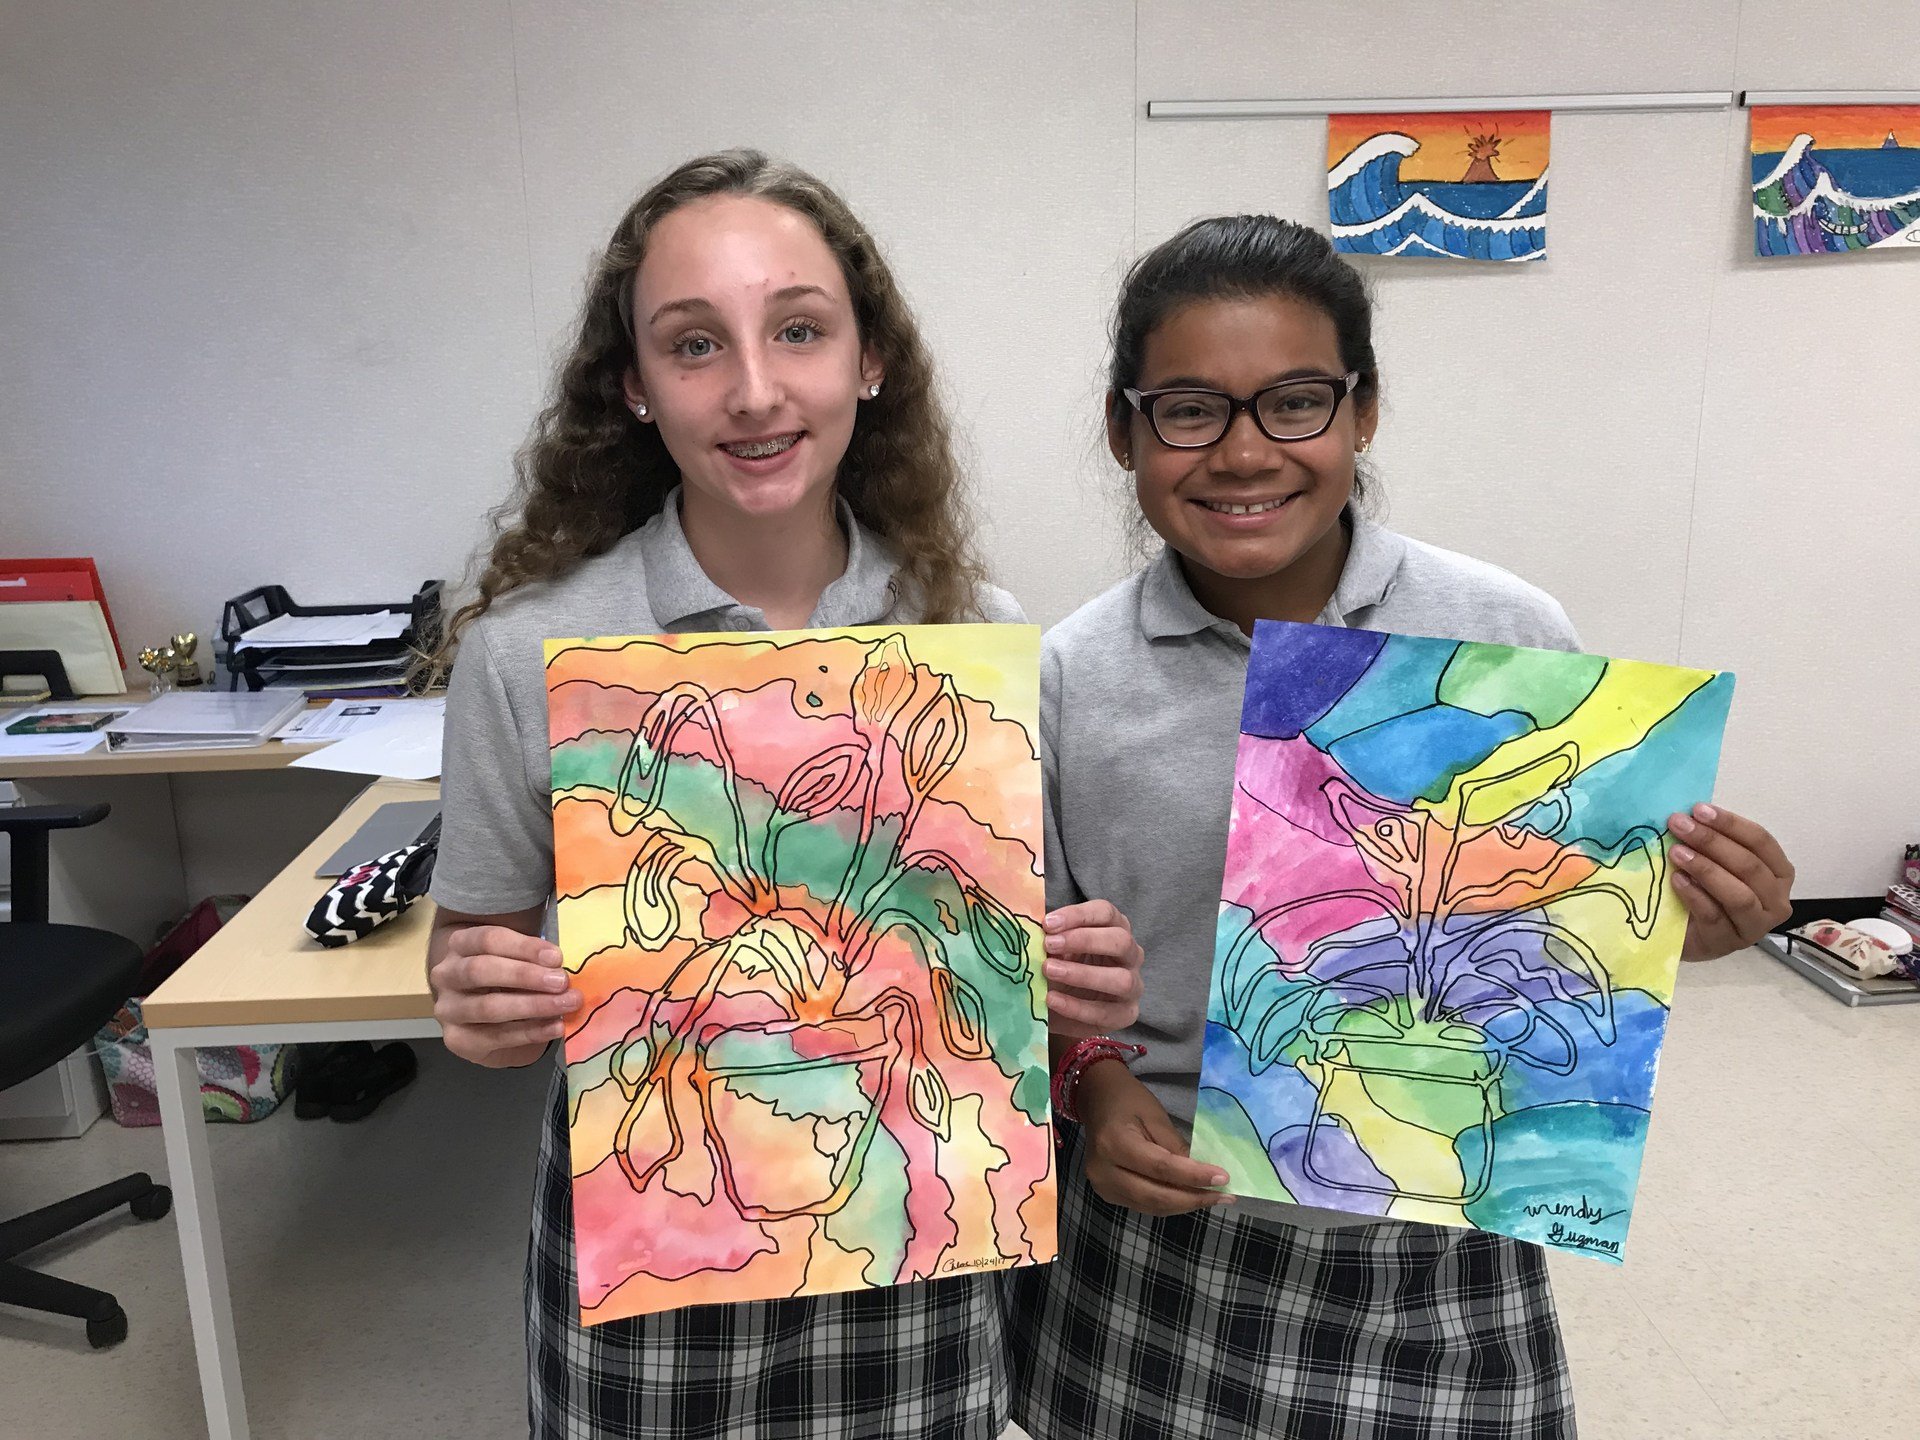 Two girl students pose for picture with drawings